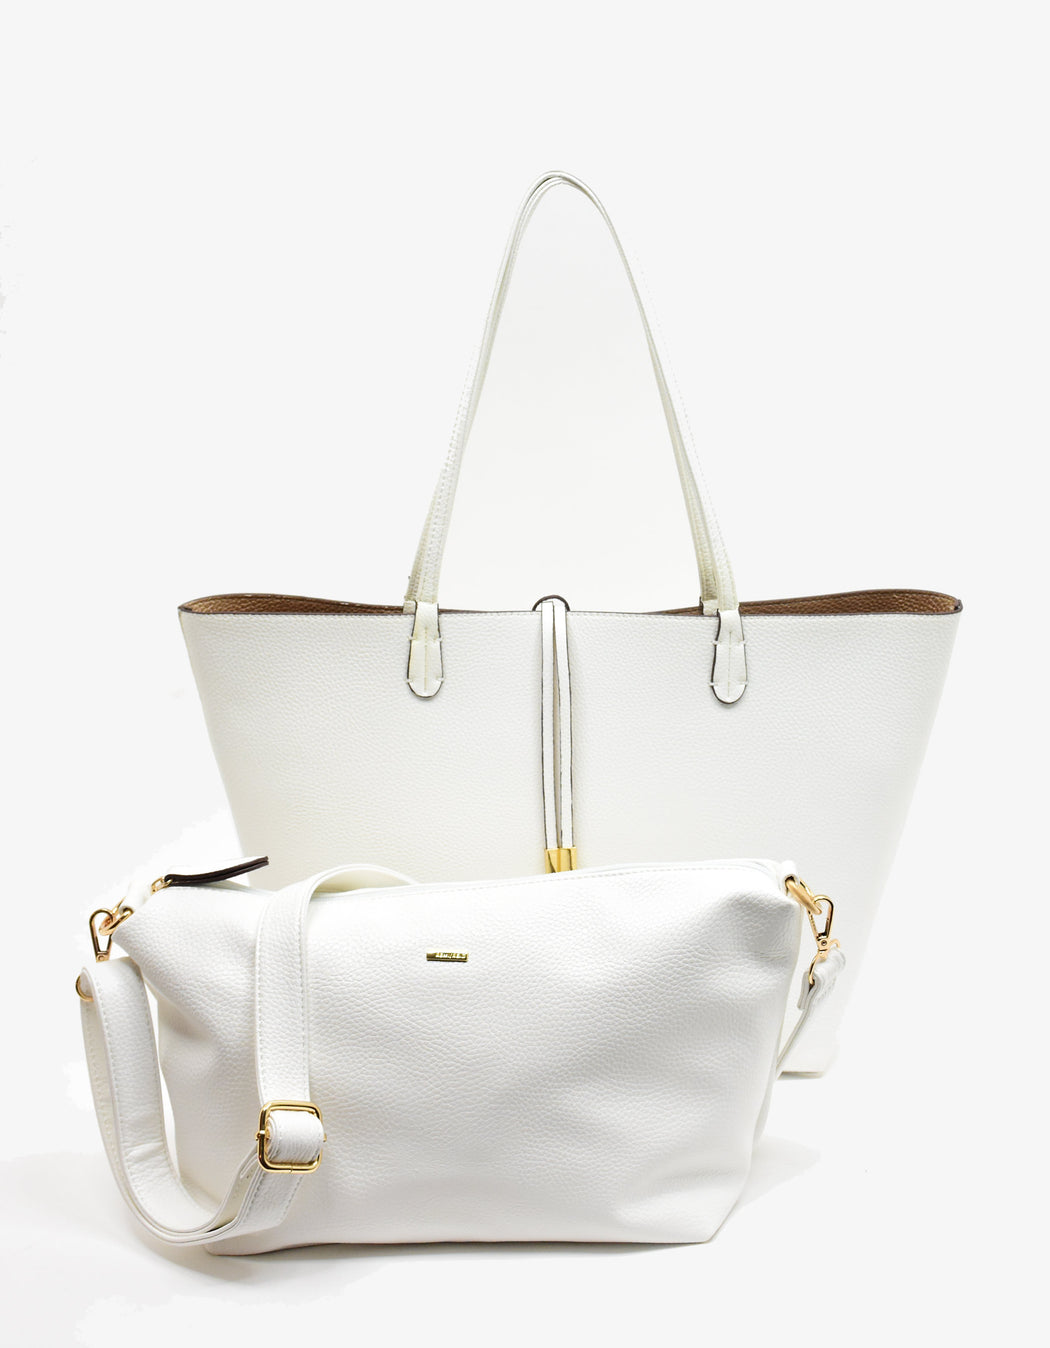 DEPARTURE TOTE CREAM/ROSE GOLD